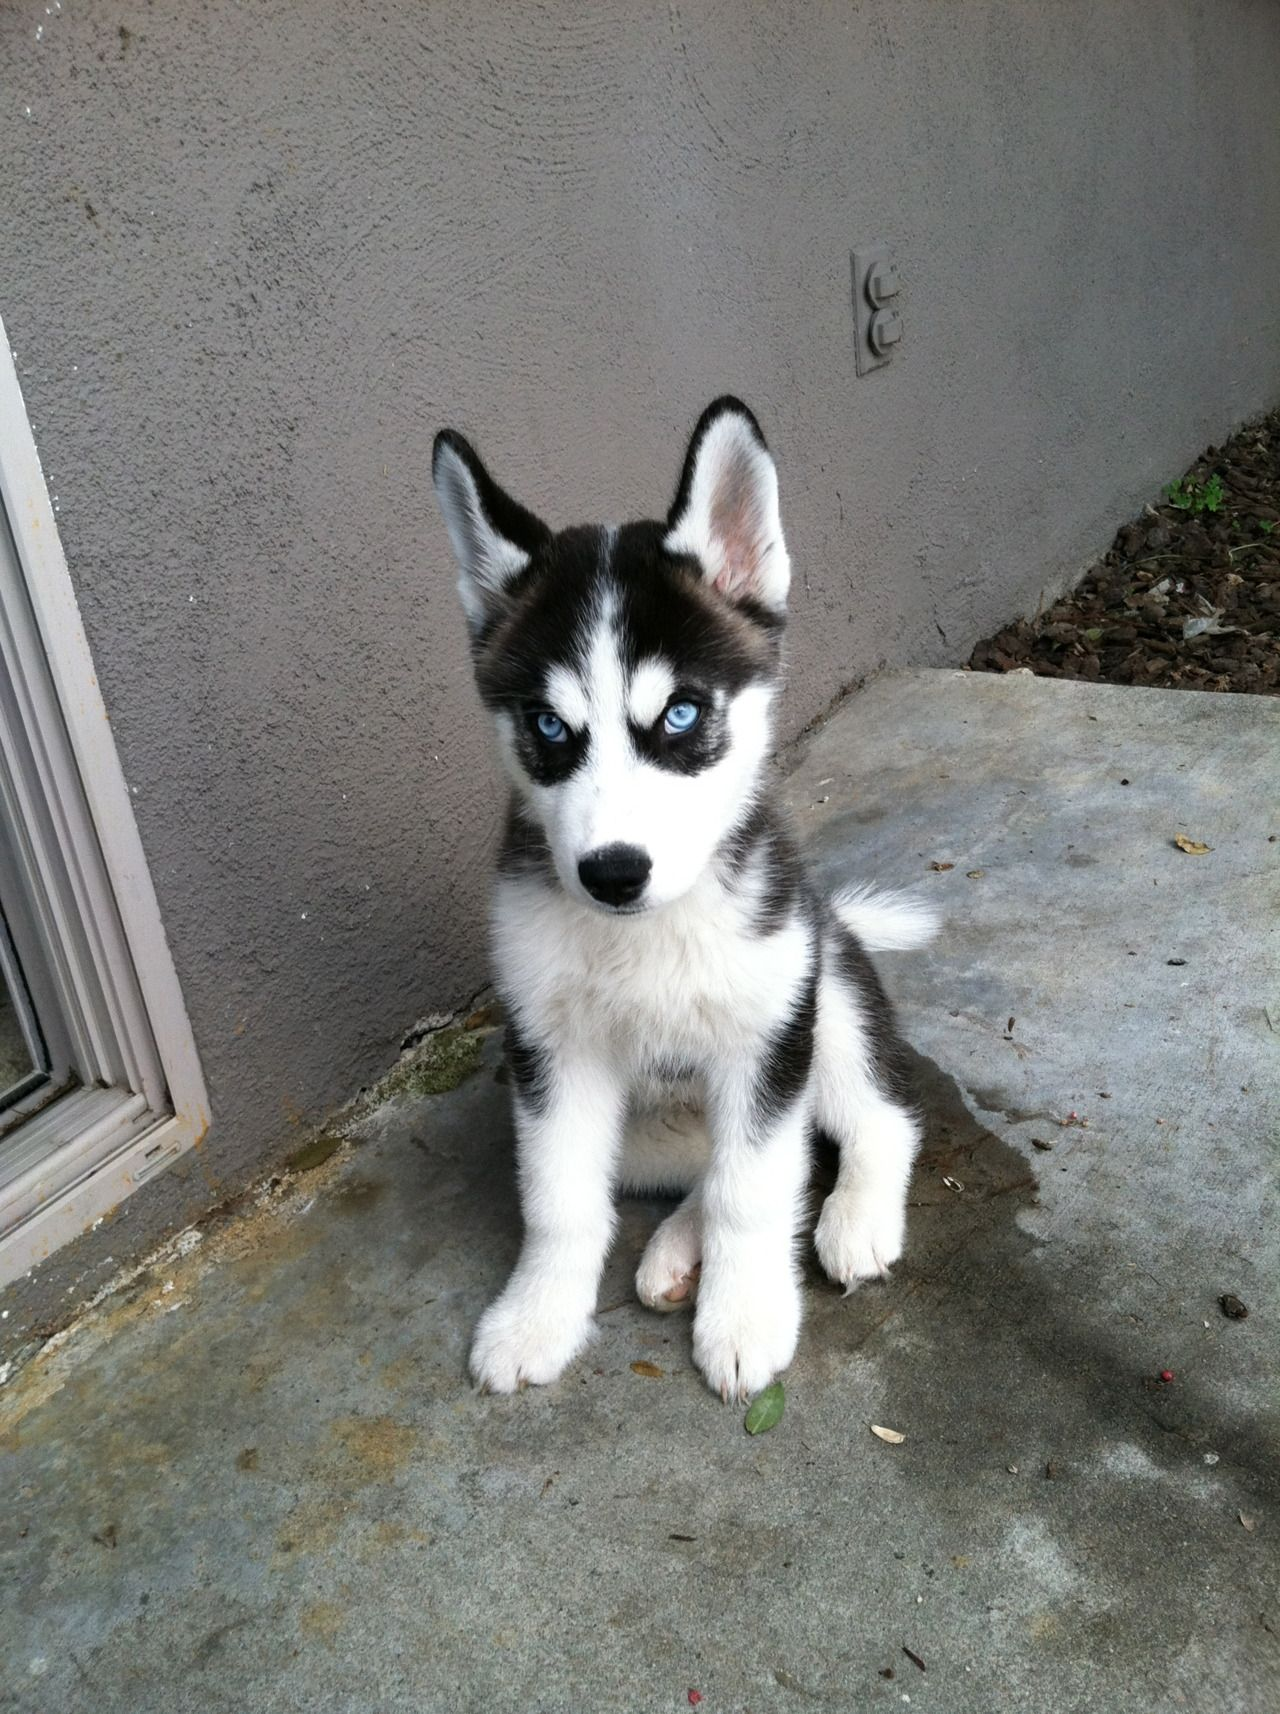 What An Adorable Guilty Looking Little Face Siberian Husky Puppy